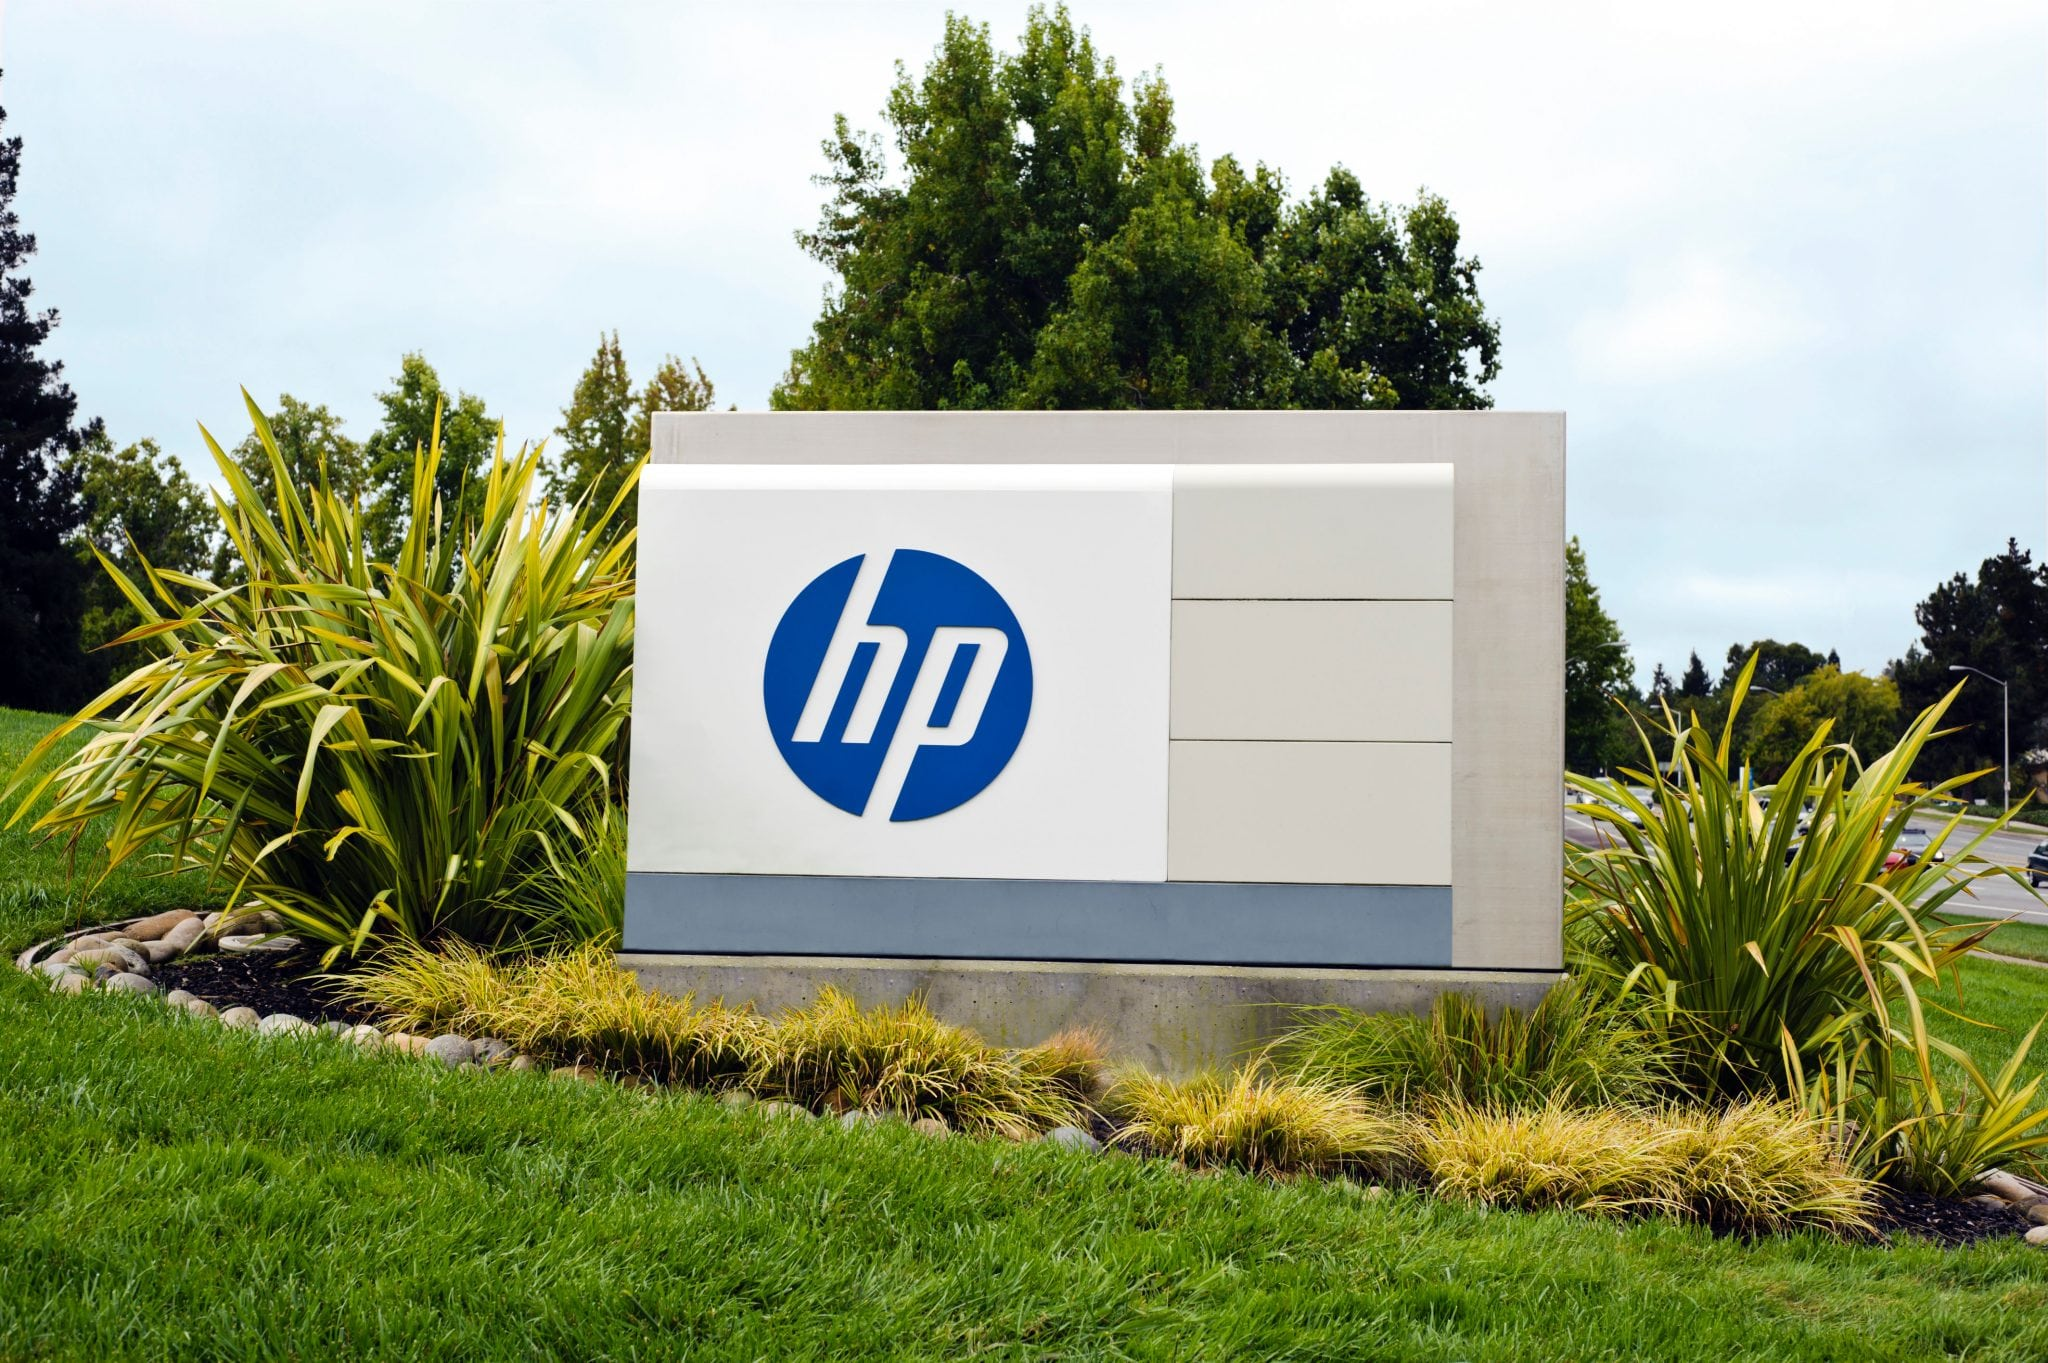 Front sign of HP Corporate headquarters in Palo Alto, Calif